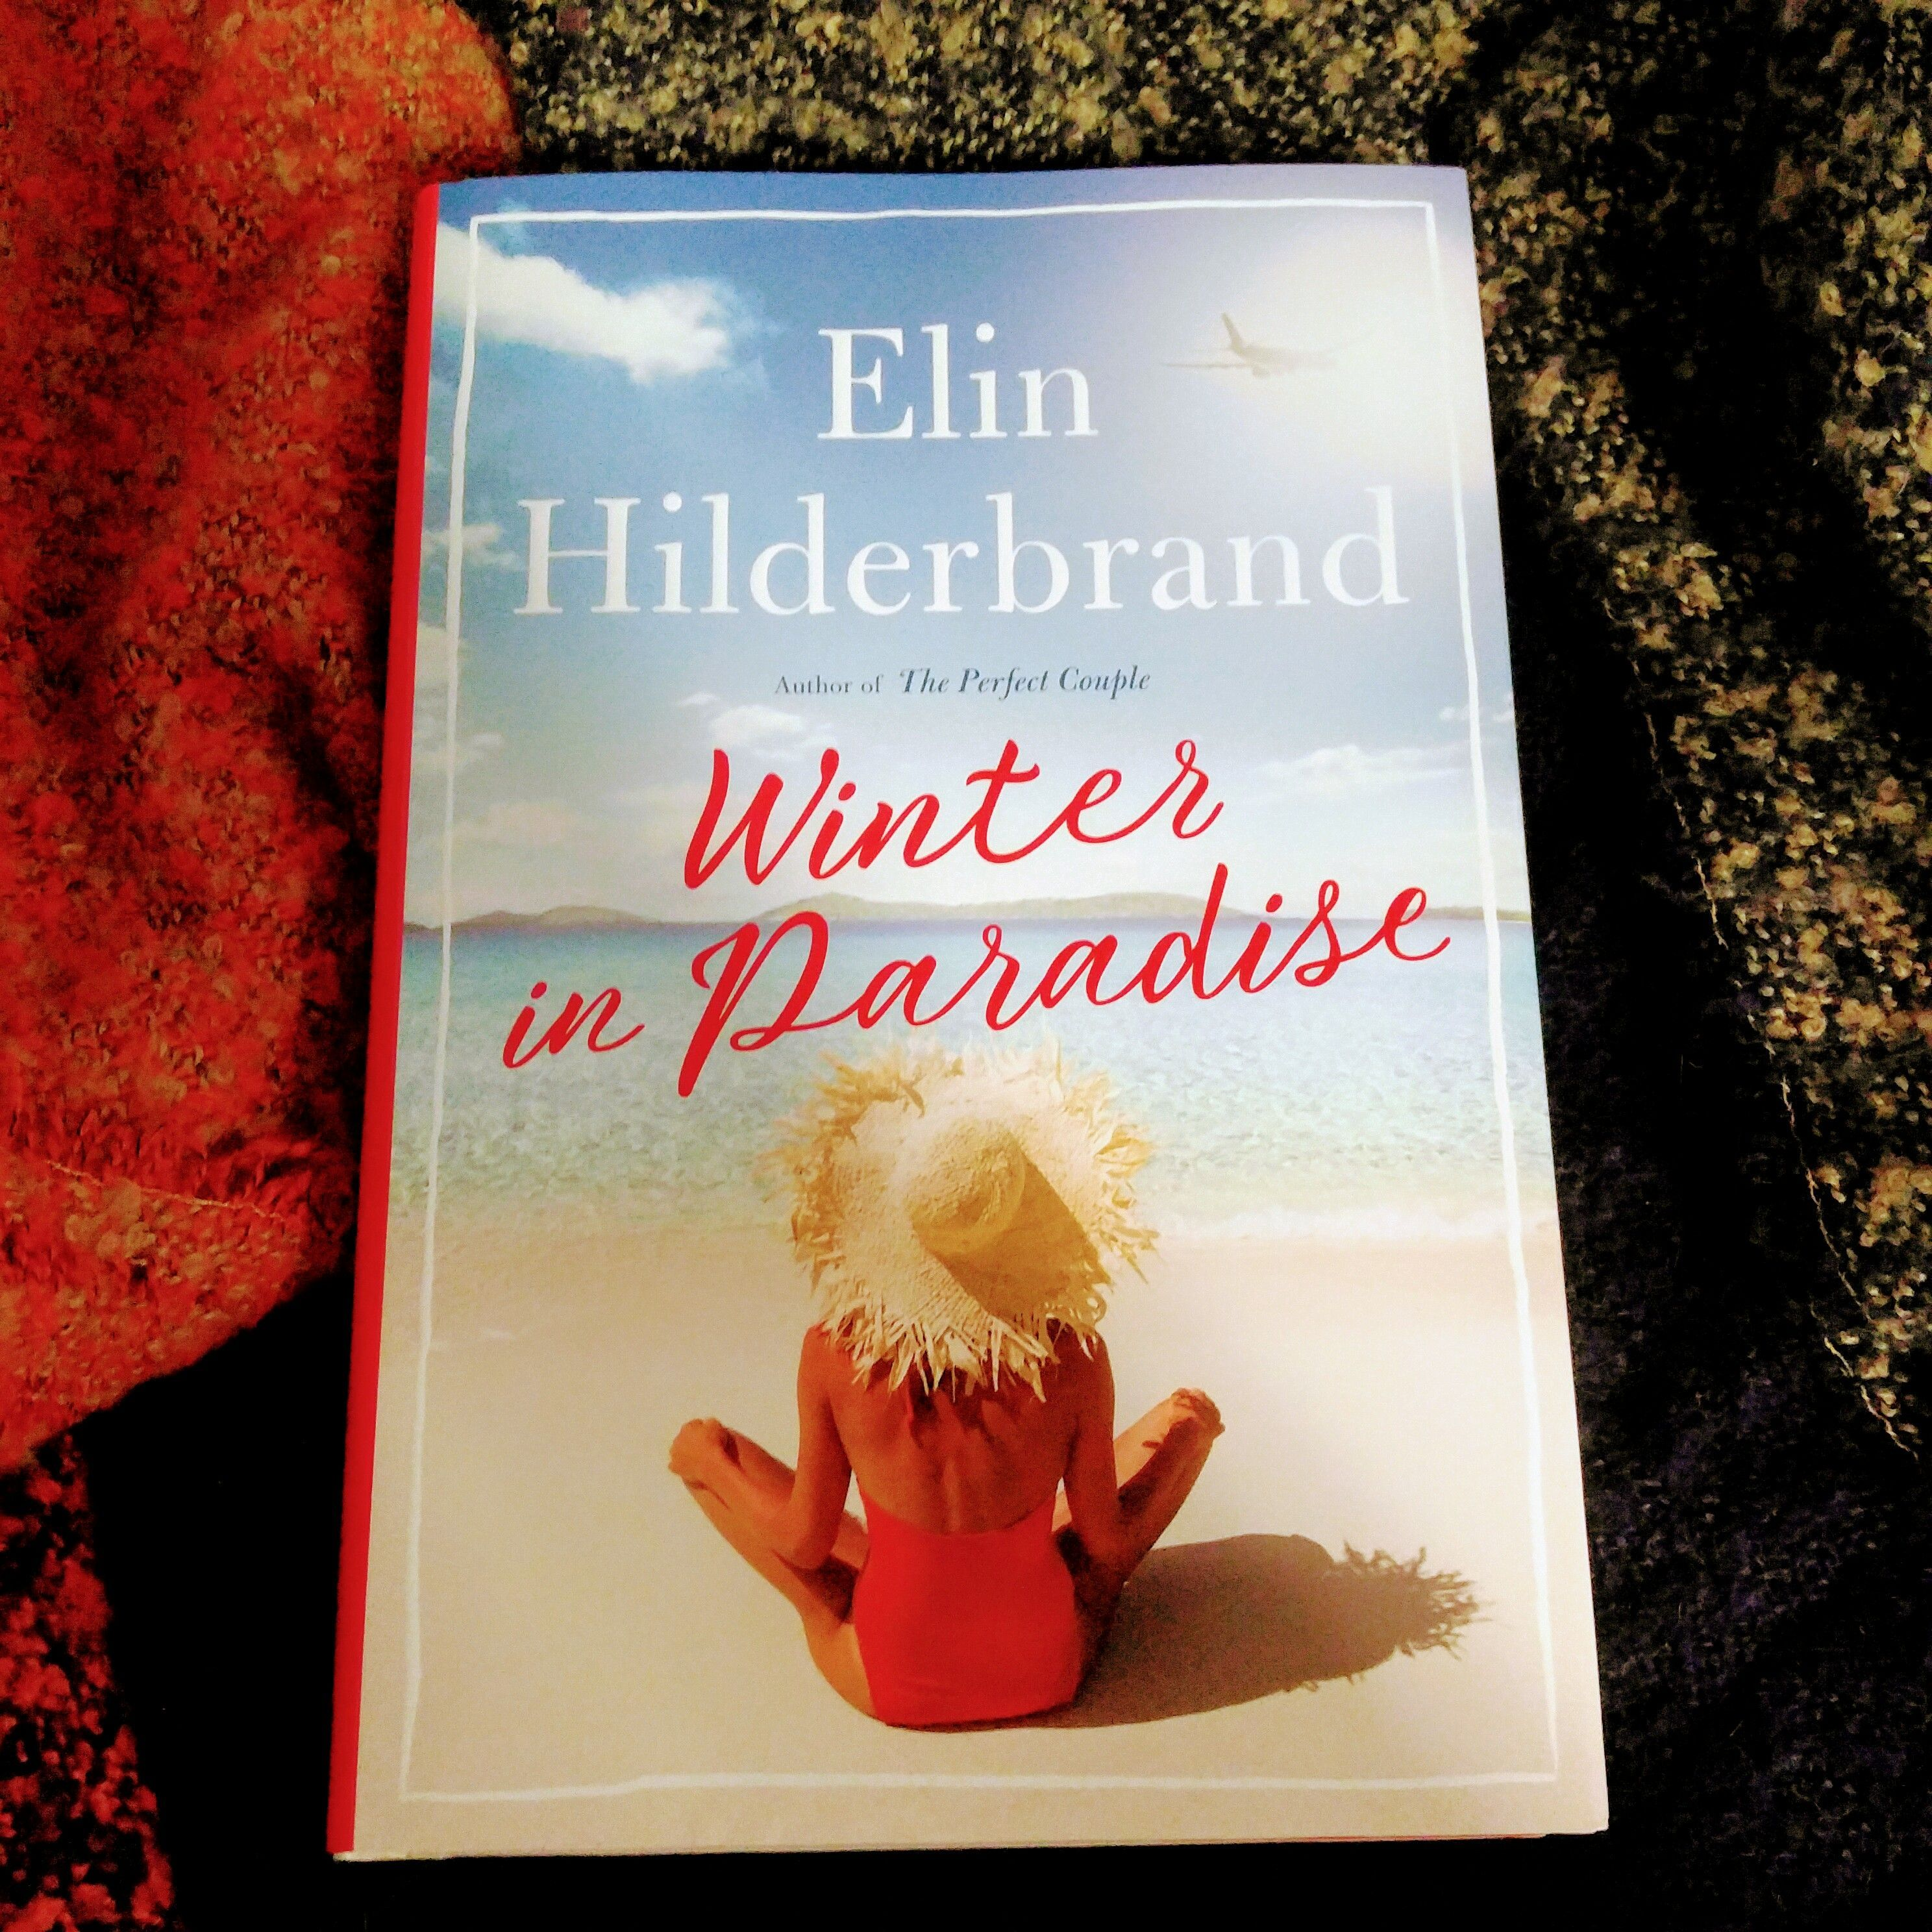 It's the newest book from Elin Hilderbrand and it's OMG